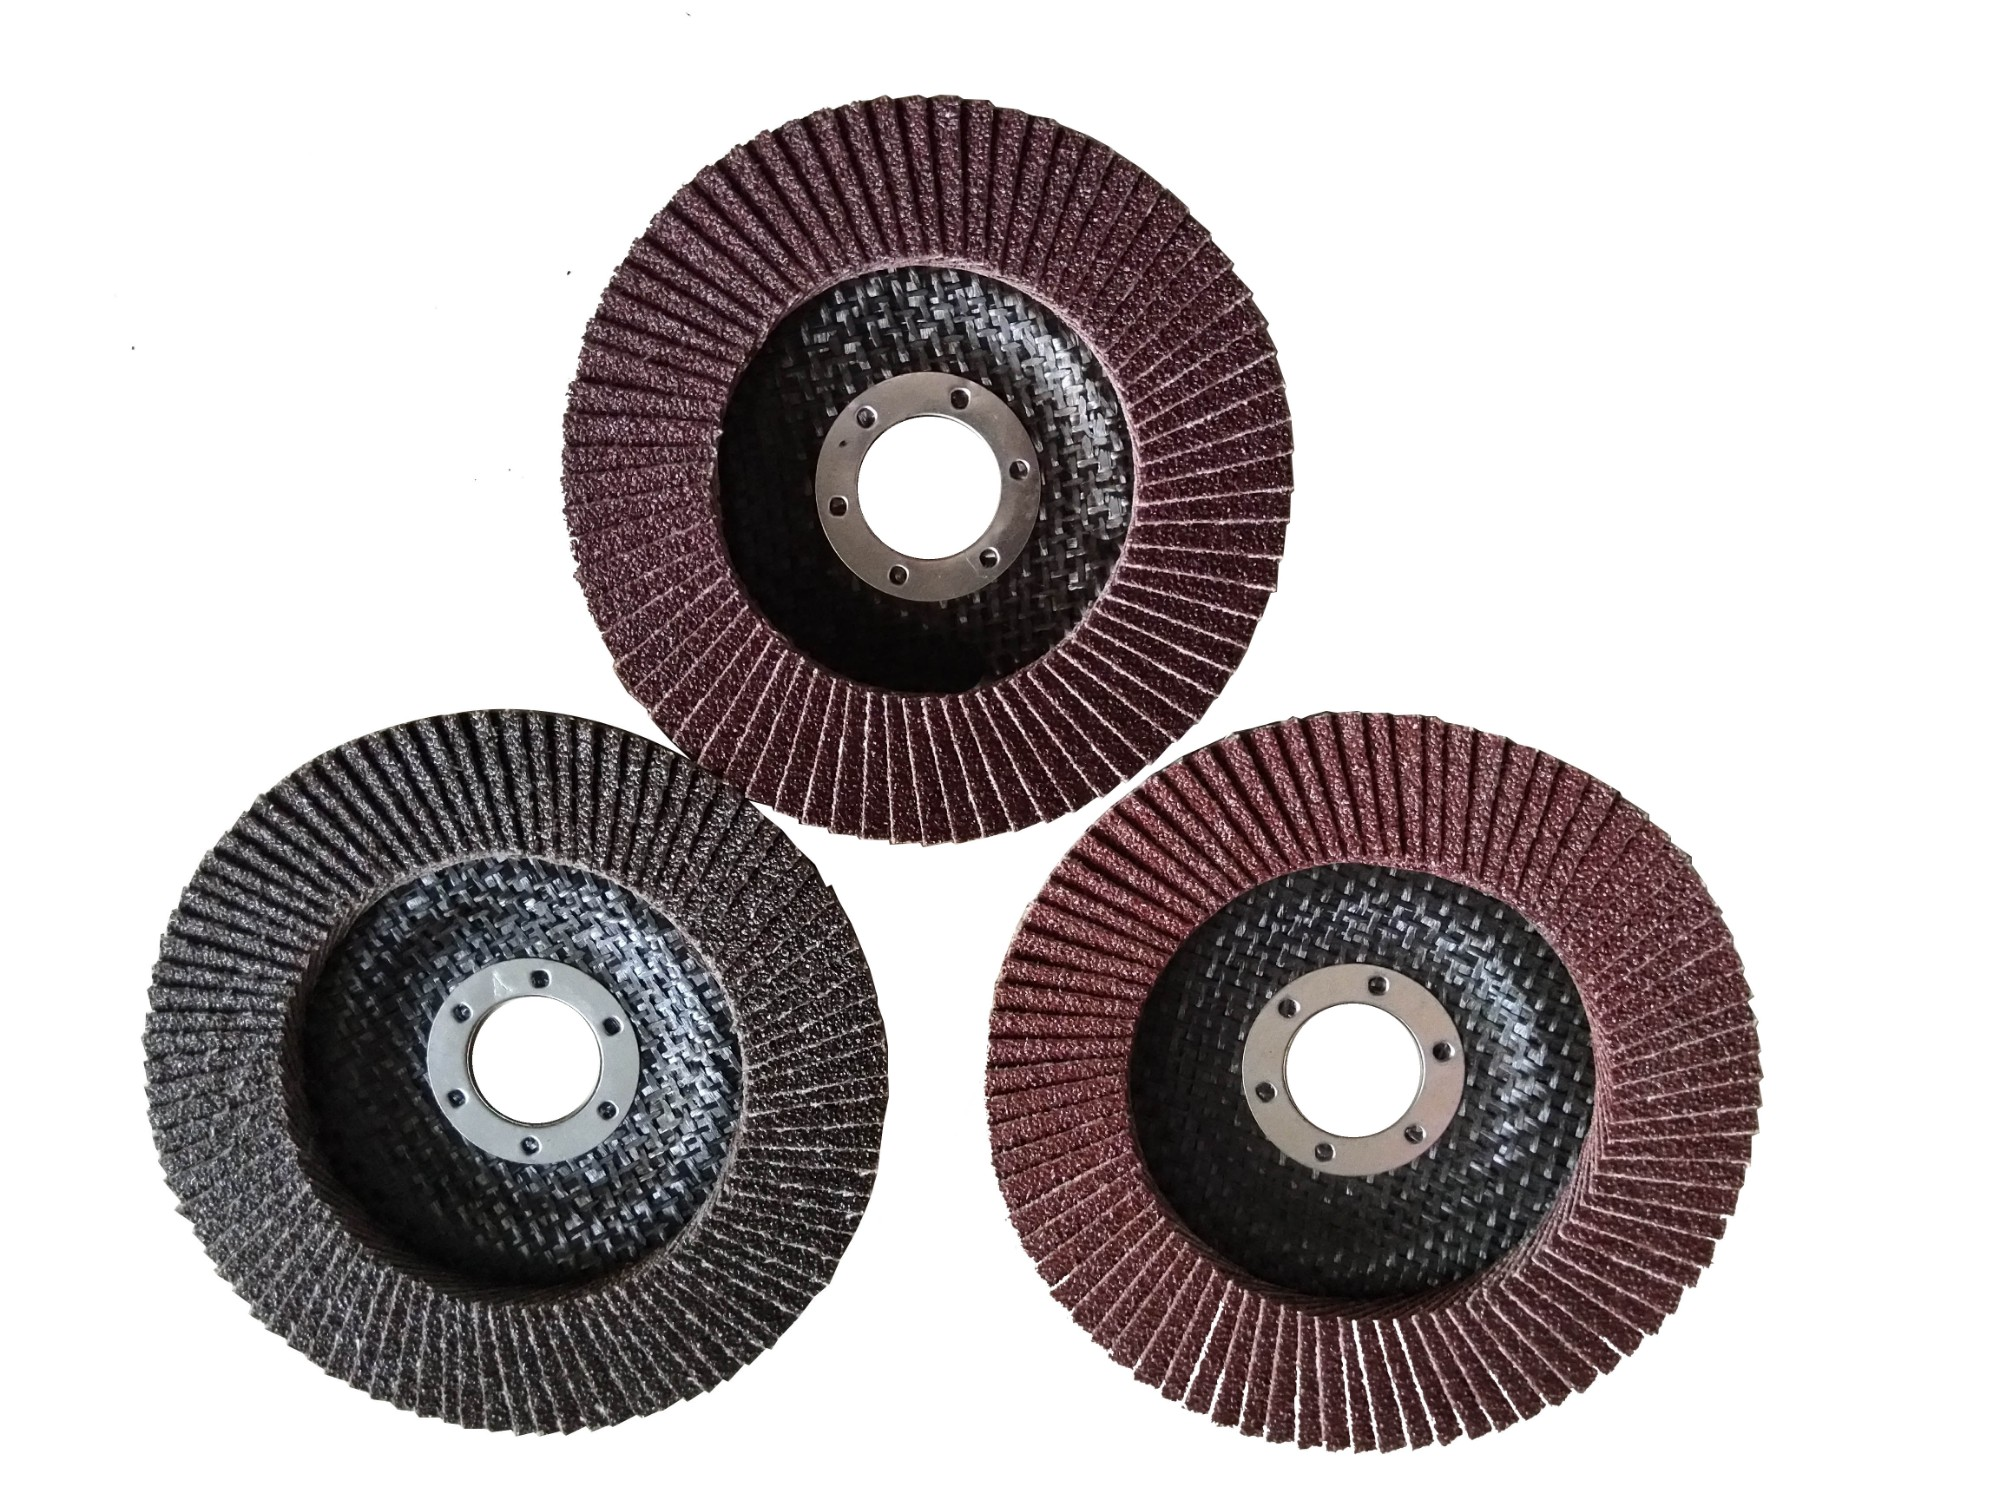 Grinding Wheel For Stainless Manufacturers, Grinding Wheel For Stainless Factory, Supply Grinding Wheel For Stainless